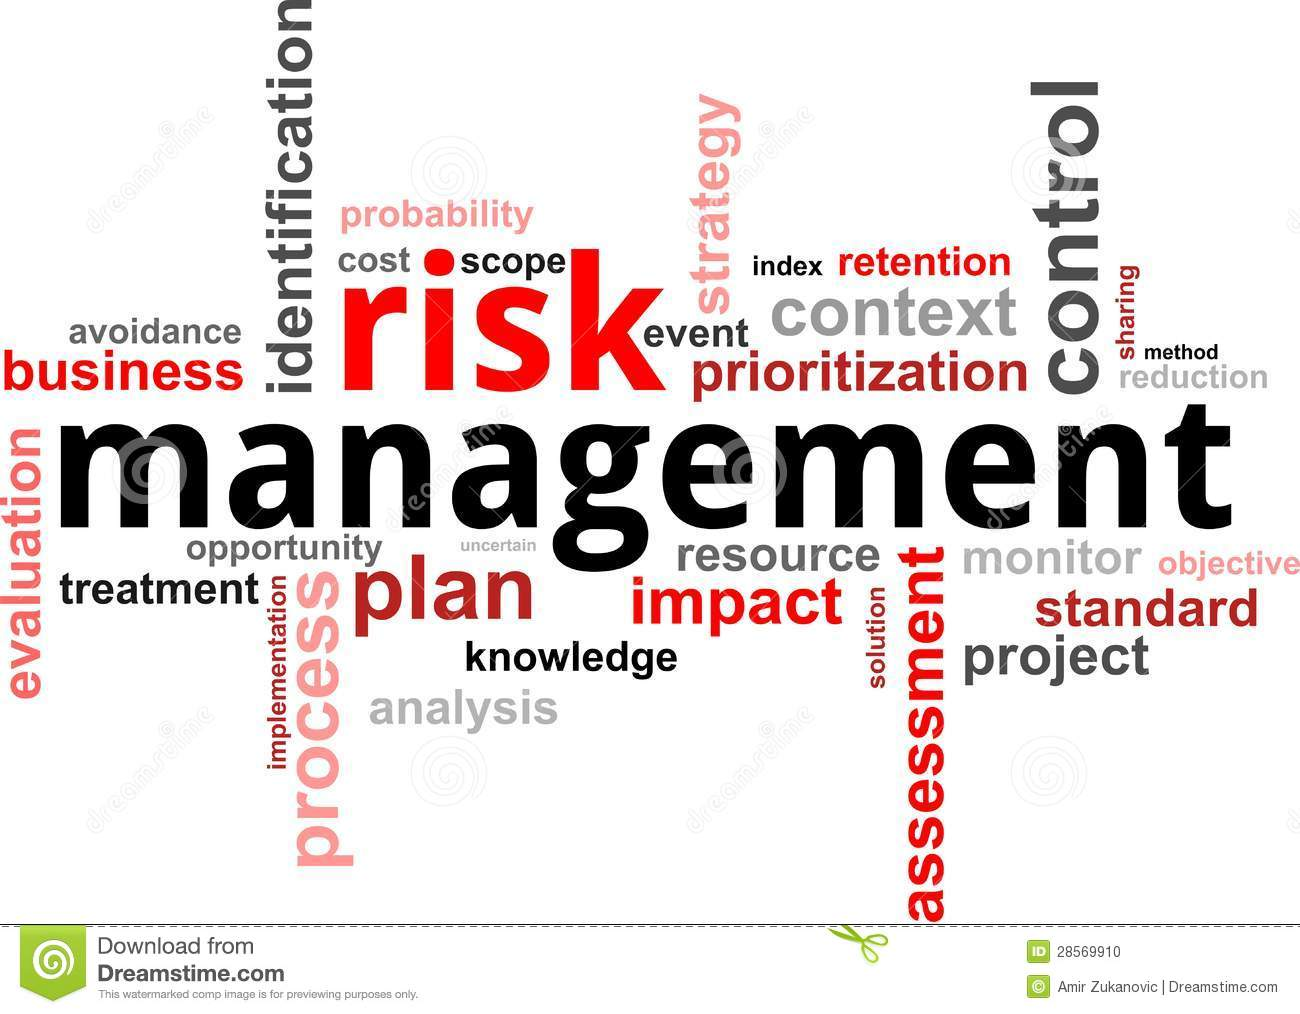 risk management plan in microsoft word